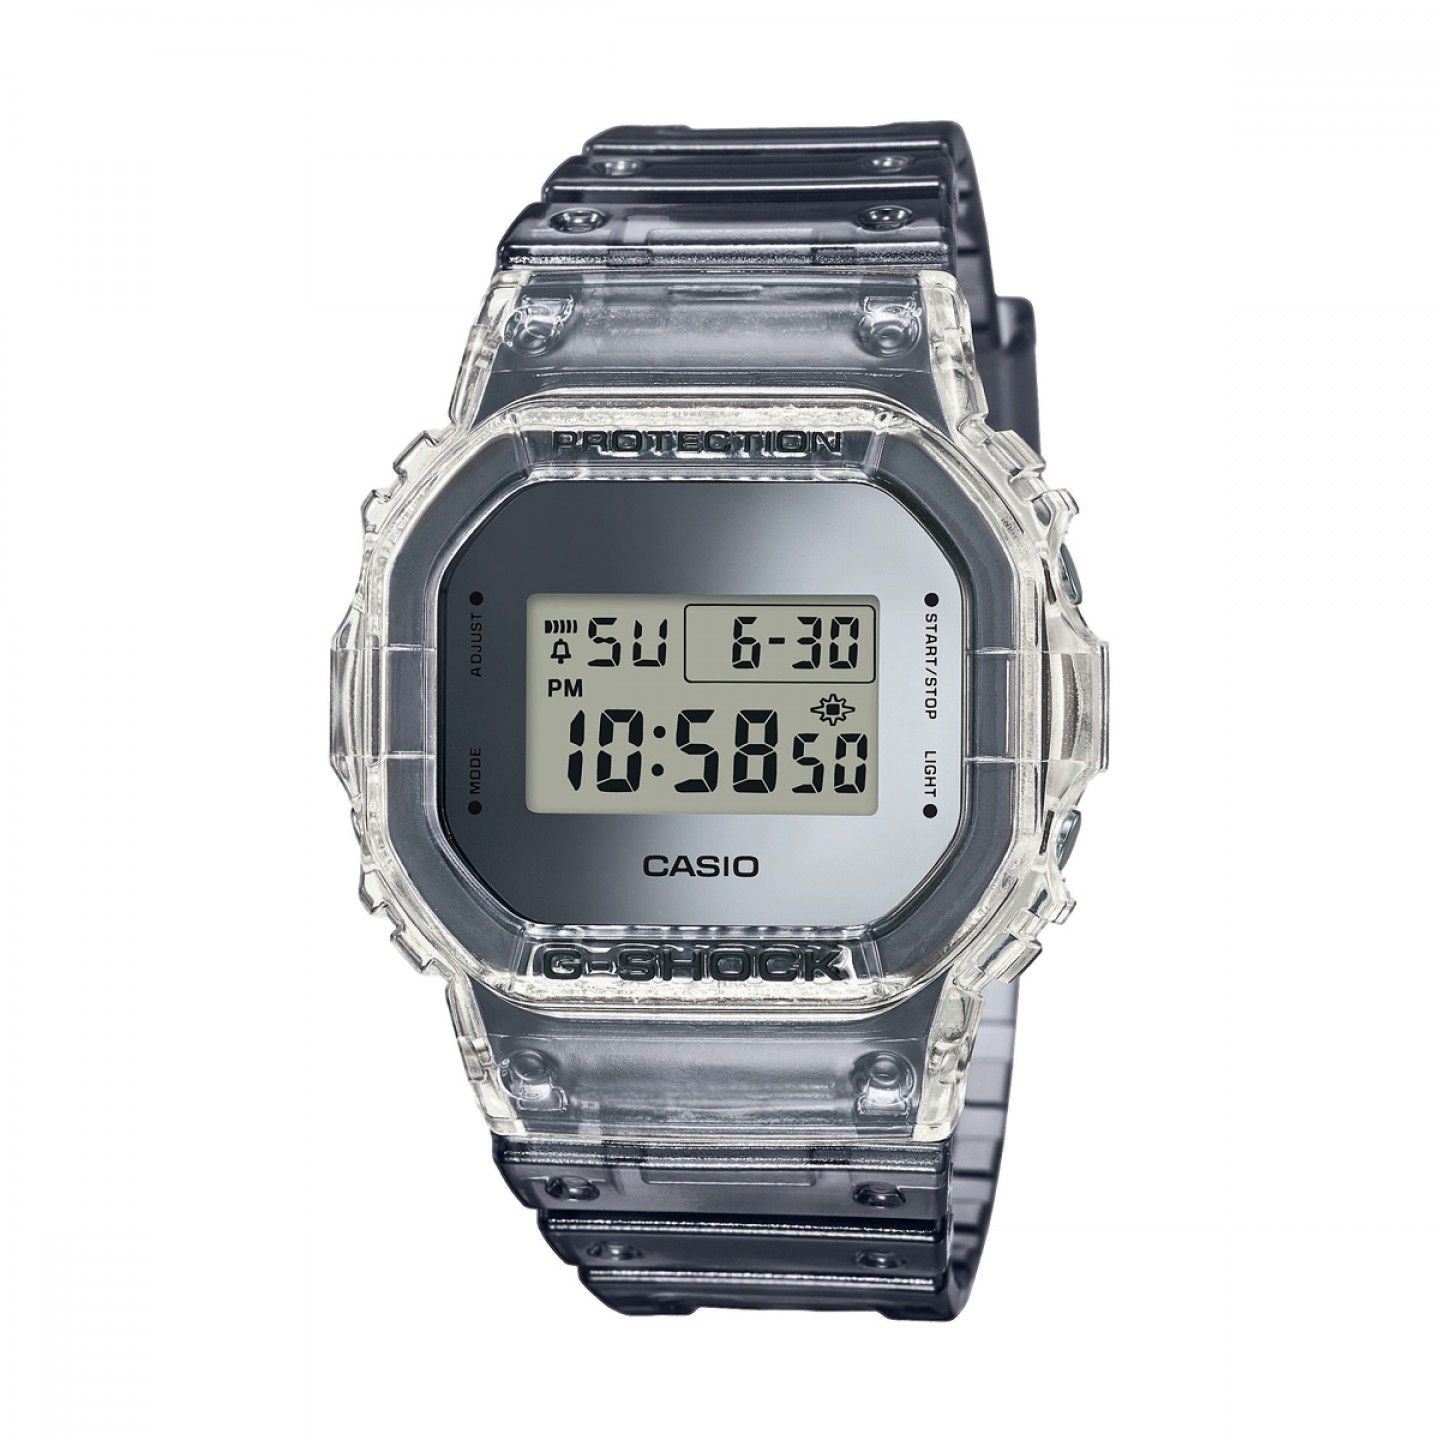 Relógio CASIO G-SHOCK The Origin Transparente